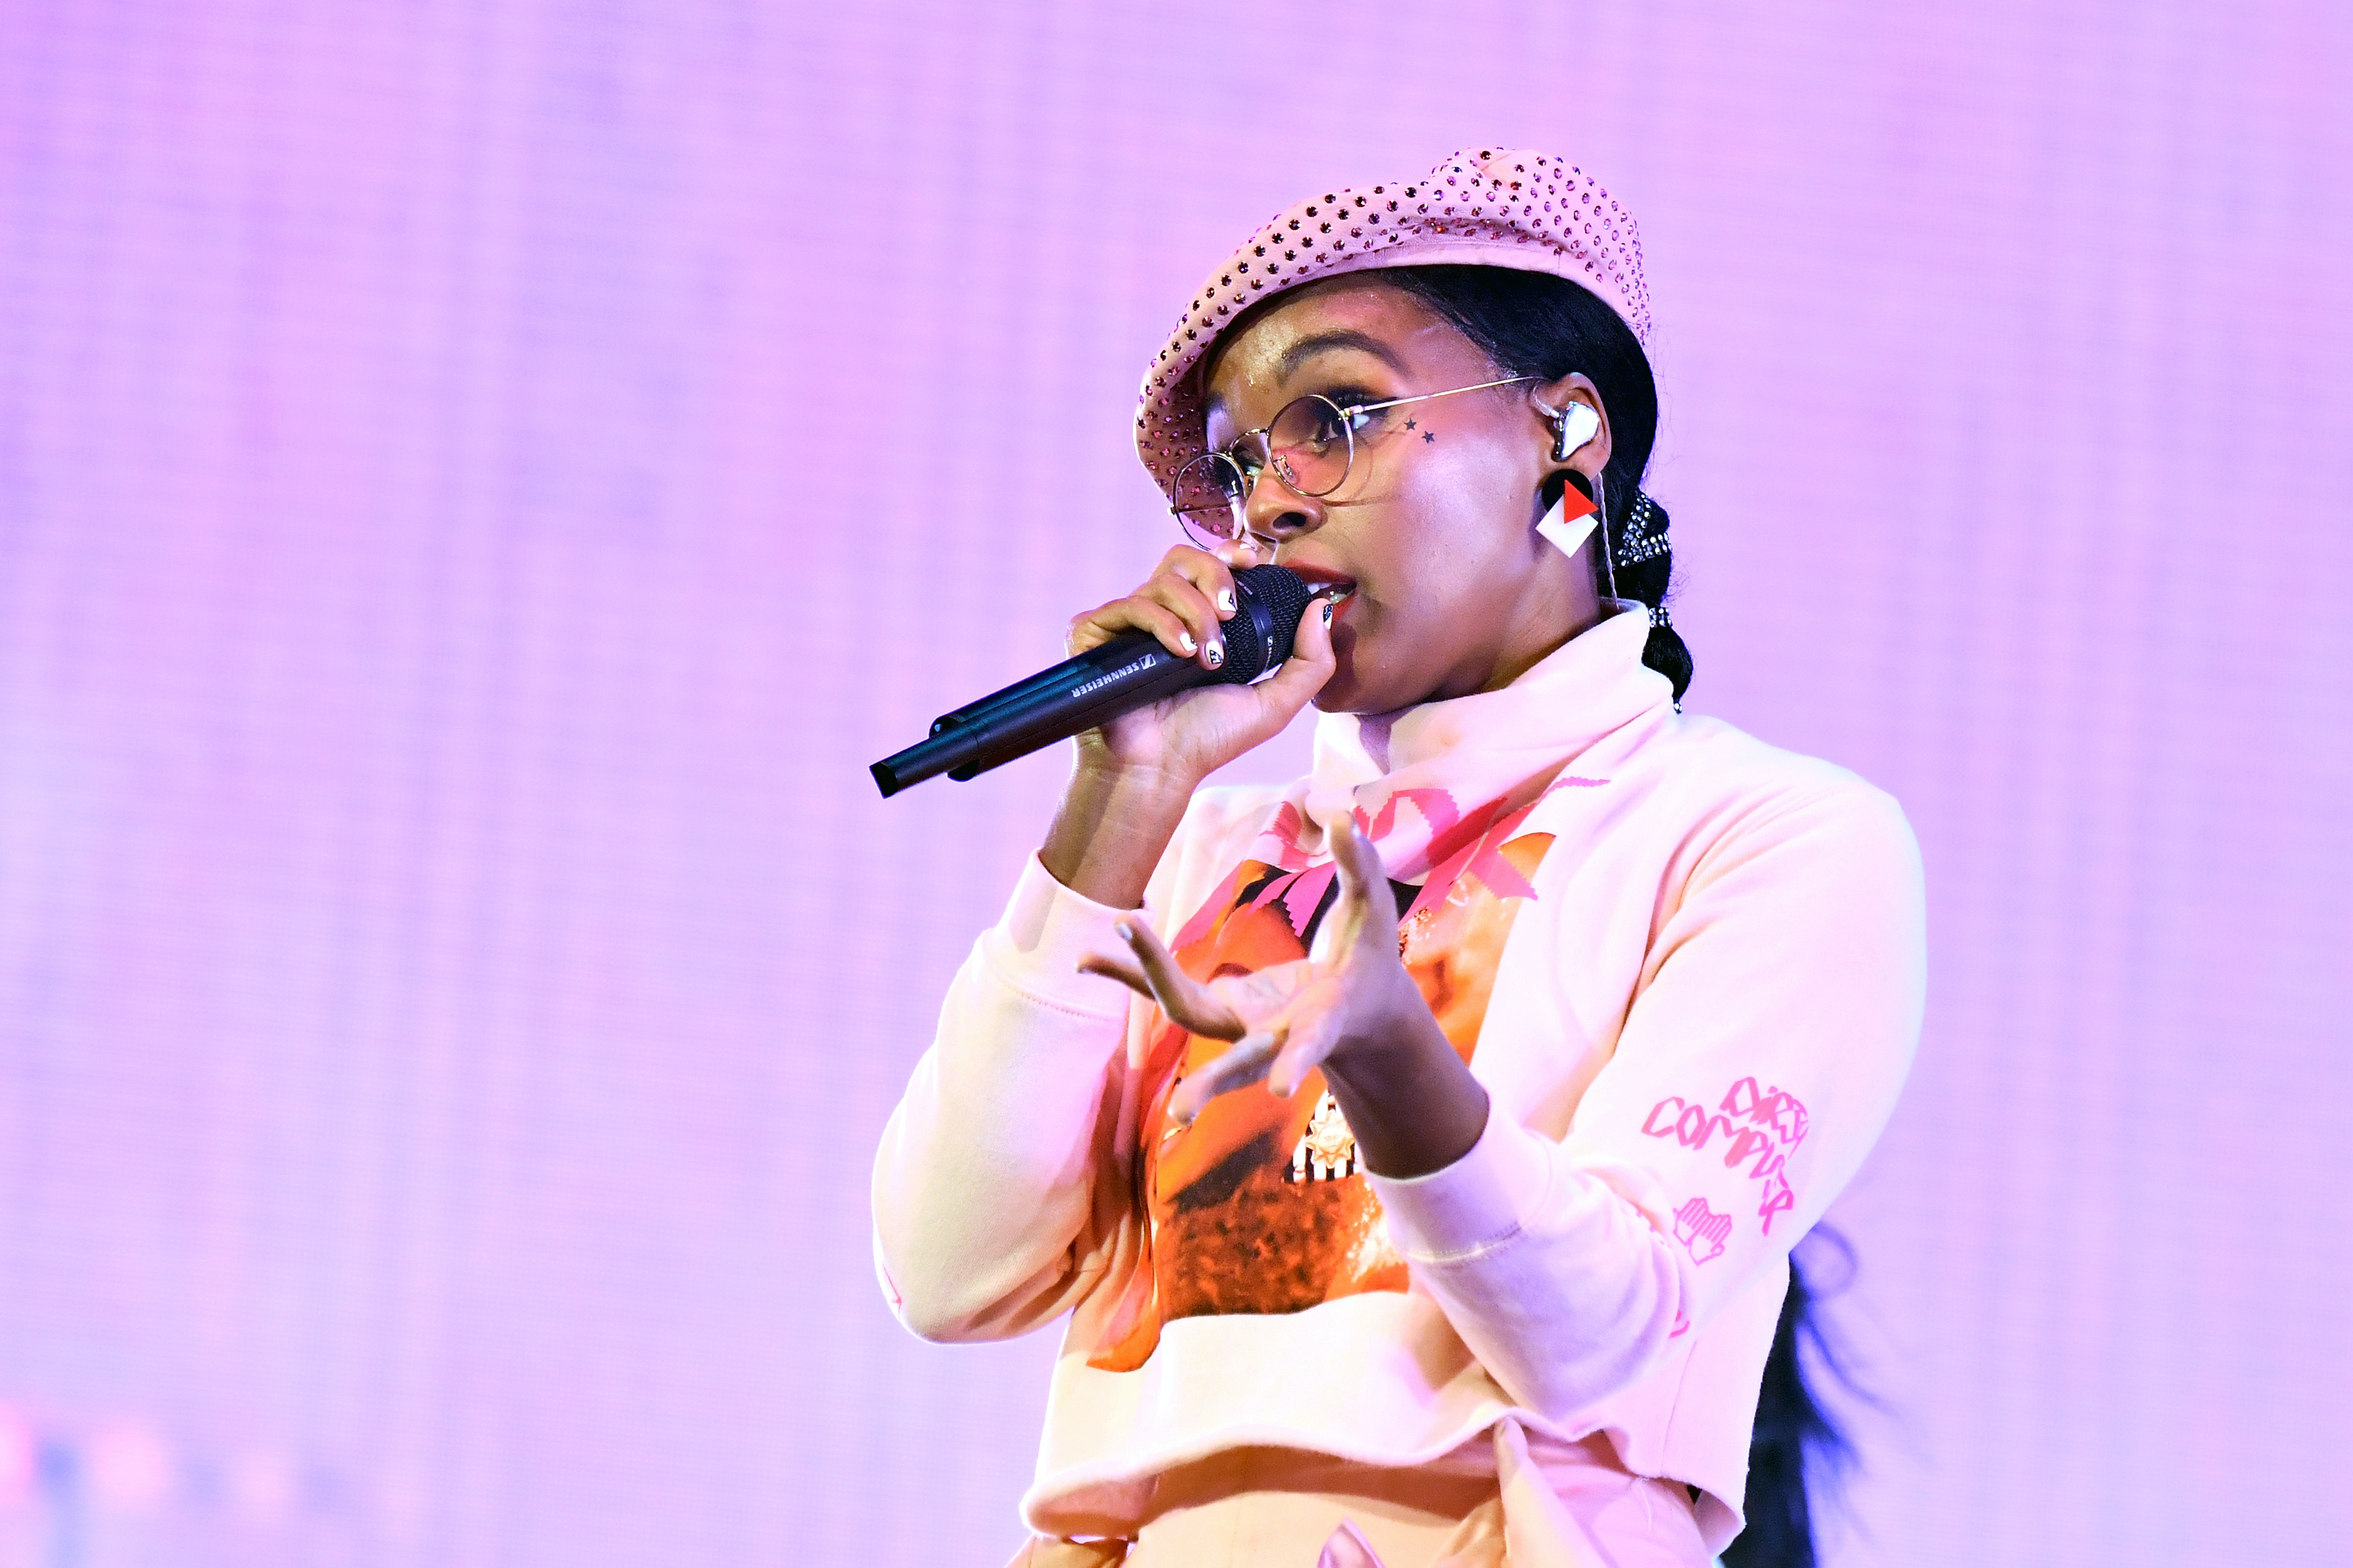 Disney to swap racist Lady and the Tramp song with Janelle Monae